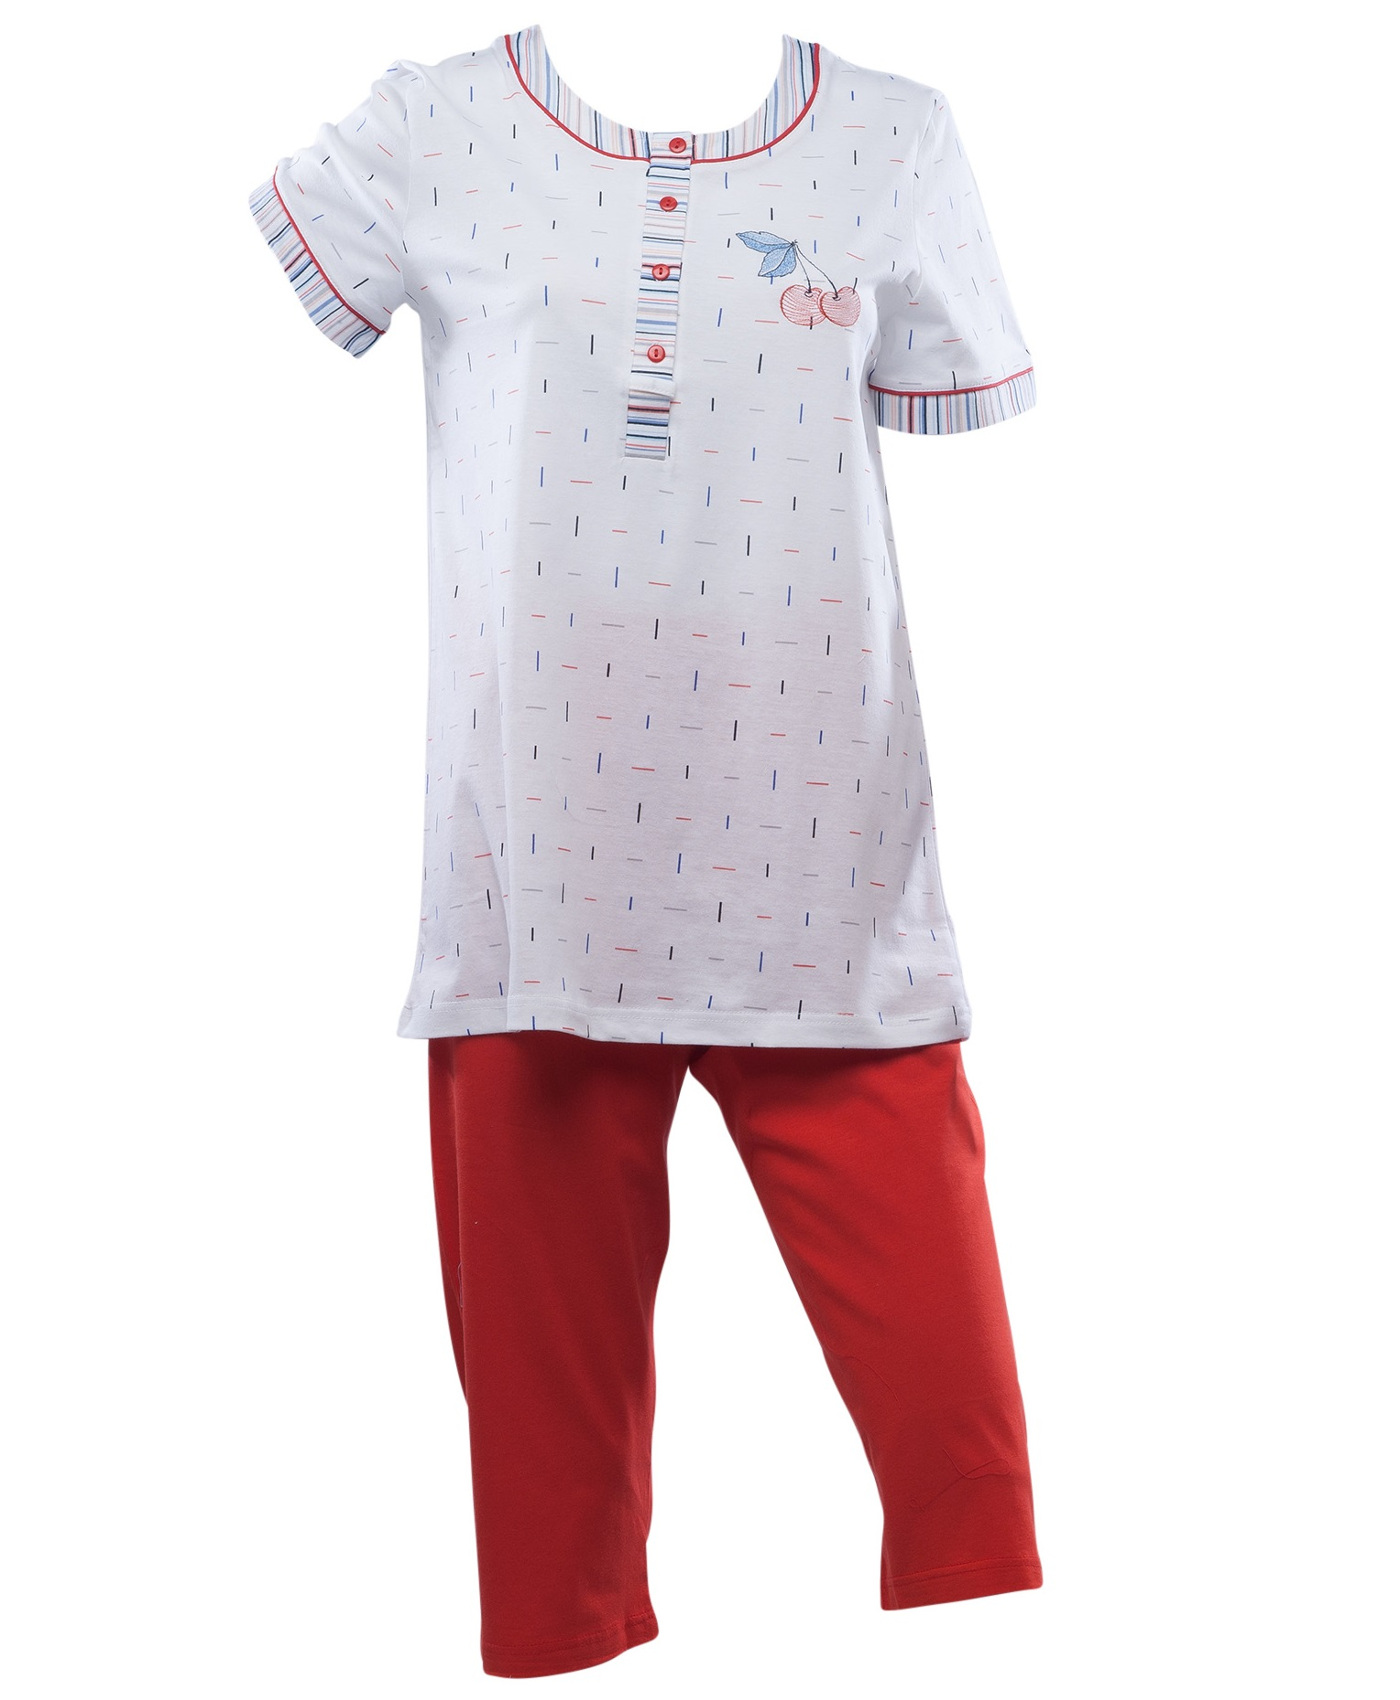 1bb9b07561e6 These ladies pyjama sets include a short sleeved top with striped detail  and a cherry motif on the chest and a pair of 3 4 length plain bottoms.